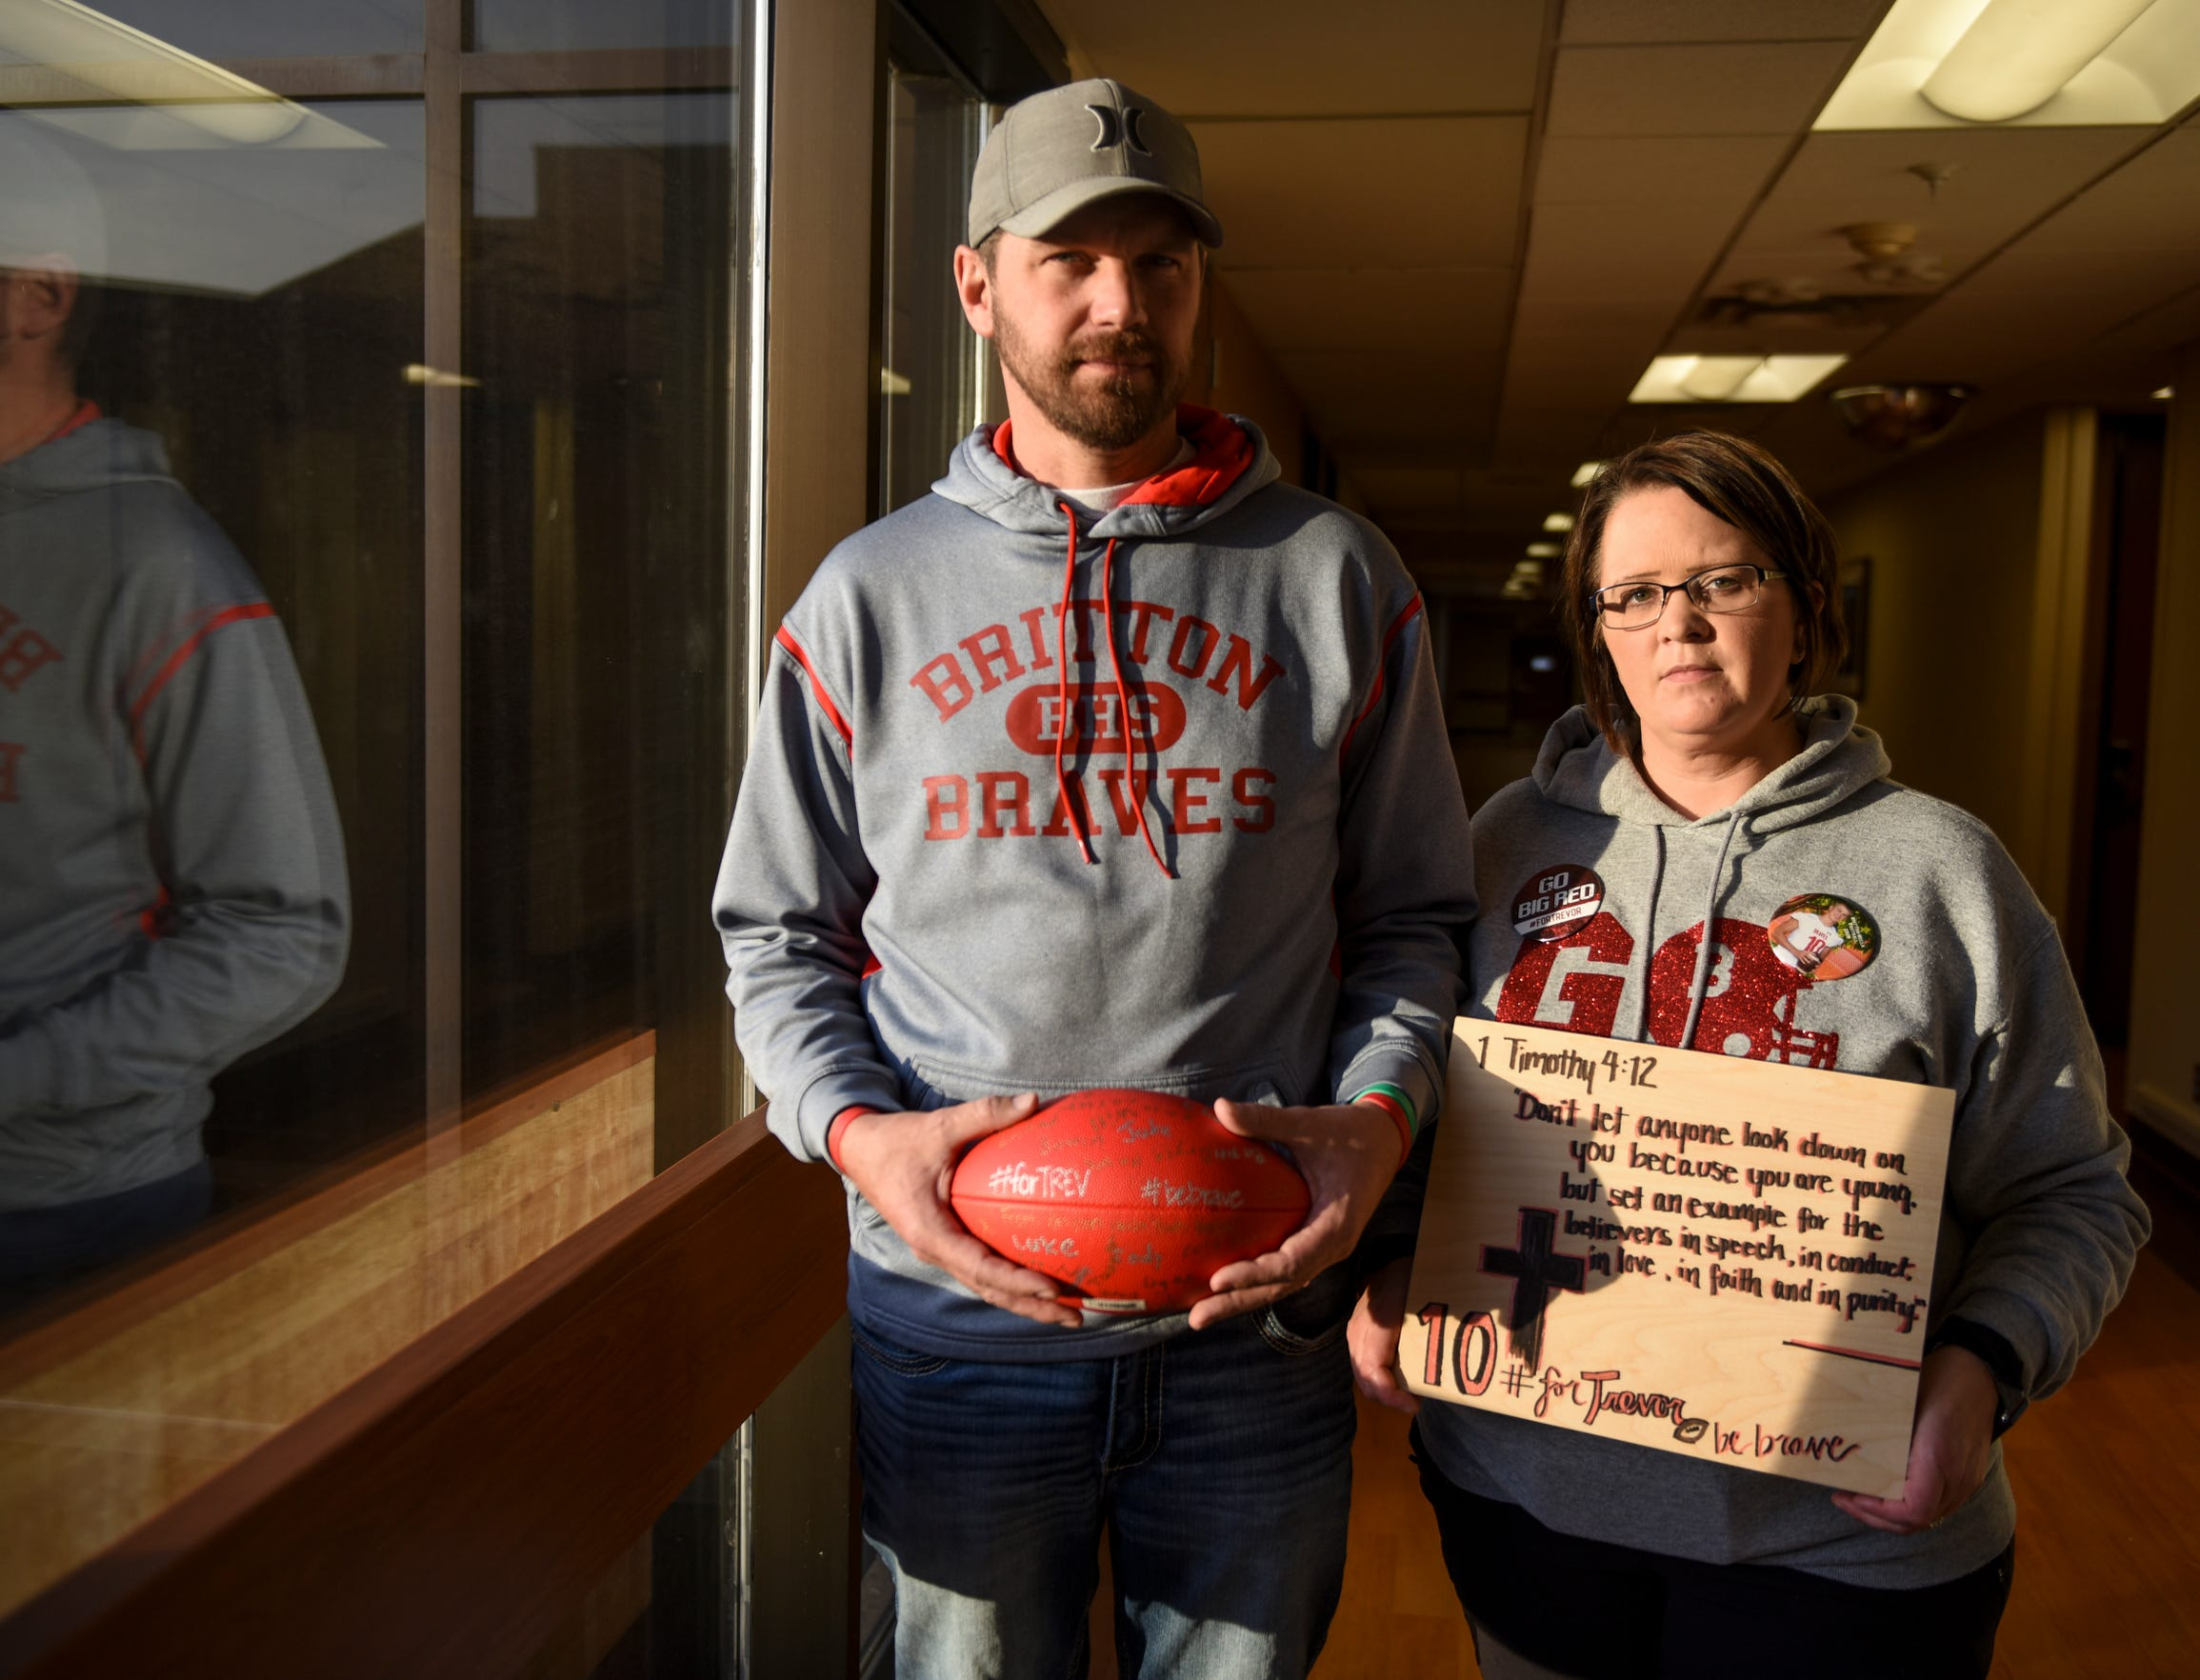 Trevor Zuehlke's parents, Kurt Zuehlke and Nikki Stiegelmeier, hold gifts sent to Trevor Zuehlke as he recovers from a traumatic brain injury on Tuesday, Nov. 12, 2019 at Avera Health. Trevor Zuehlke, a Britton-Hecla High School quarterback, suffered a traumatic brain injury after a football game that left him in a medically induced coma.